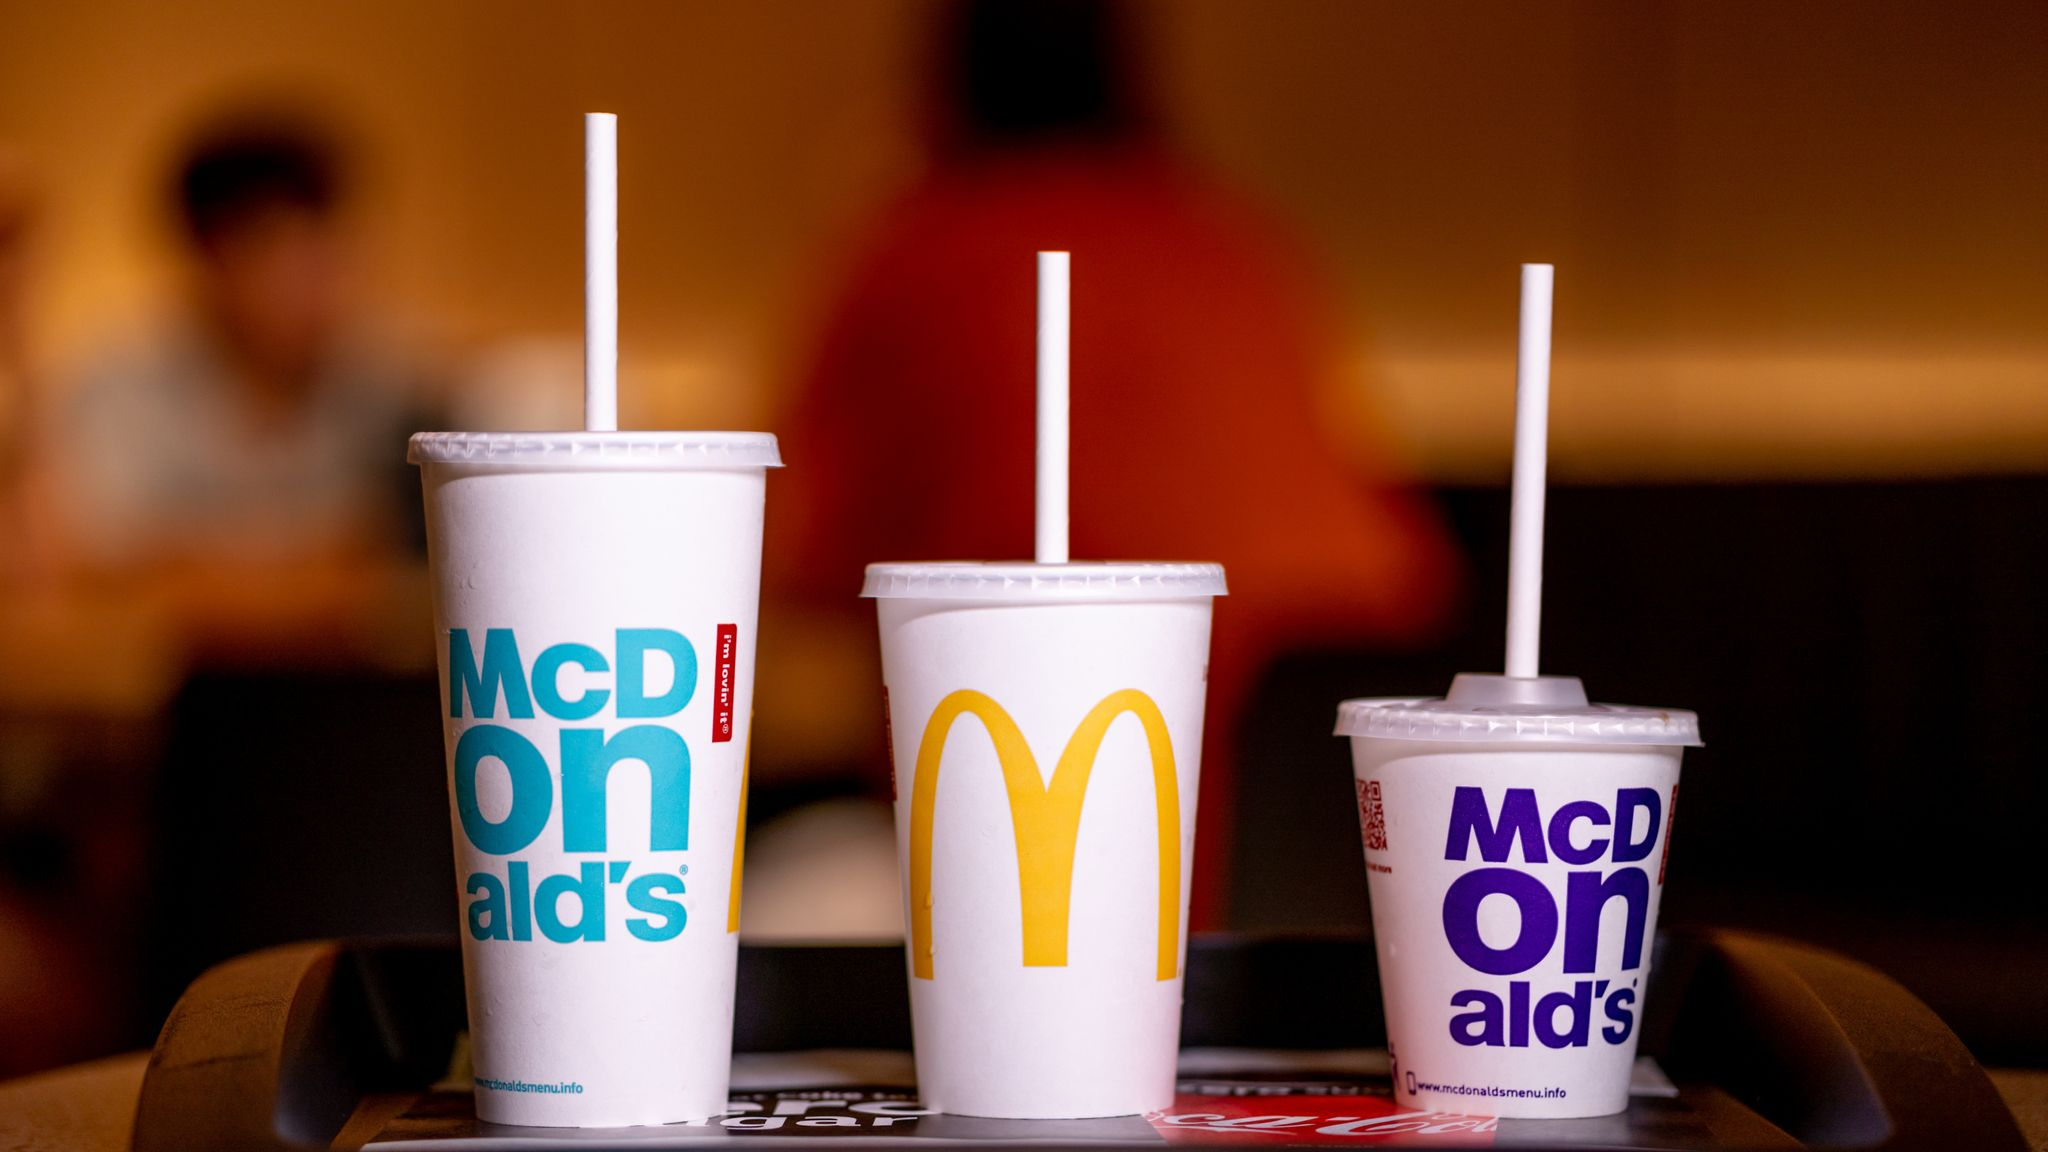 McDonald's workers share what the 'buttons' on its drink lids really mean